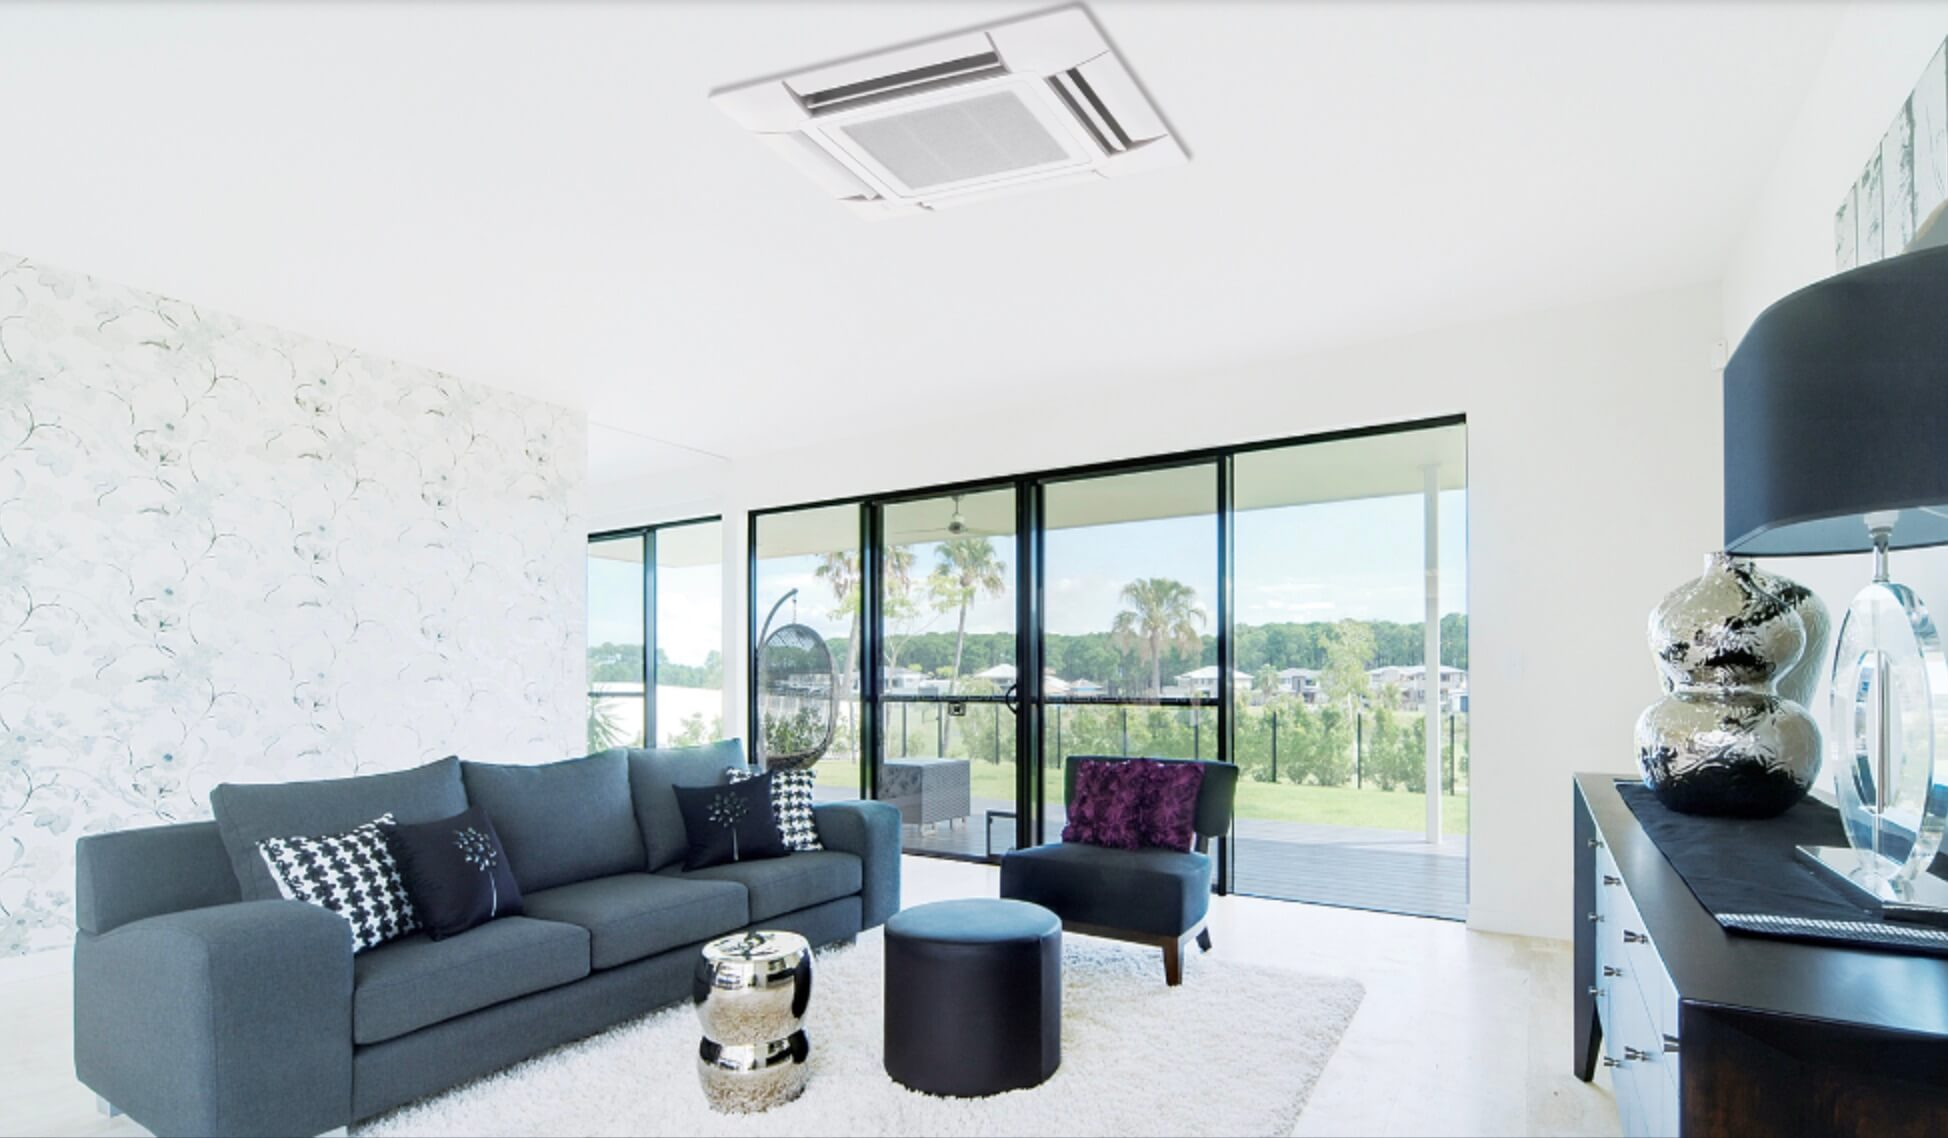 Ceiling cassette aircon unit for a beautiful country home.